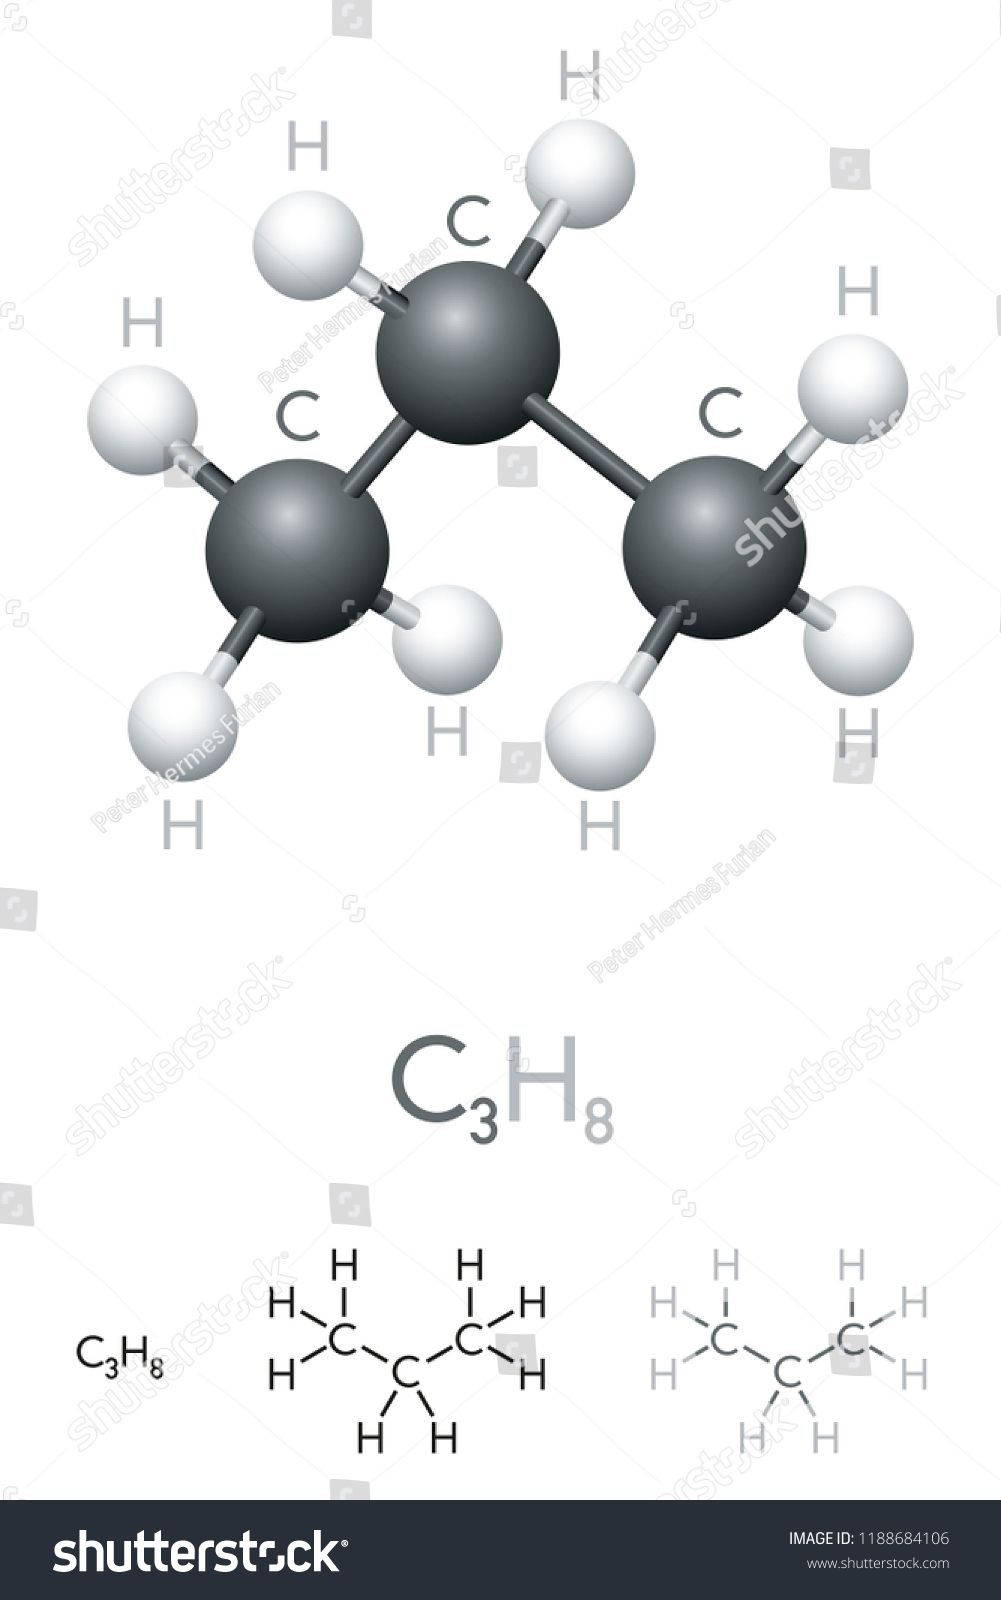 hight resolution of propane c3h8 molecule model and chemical formula organic chemical compound used as